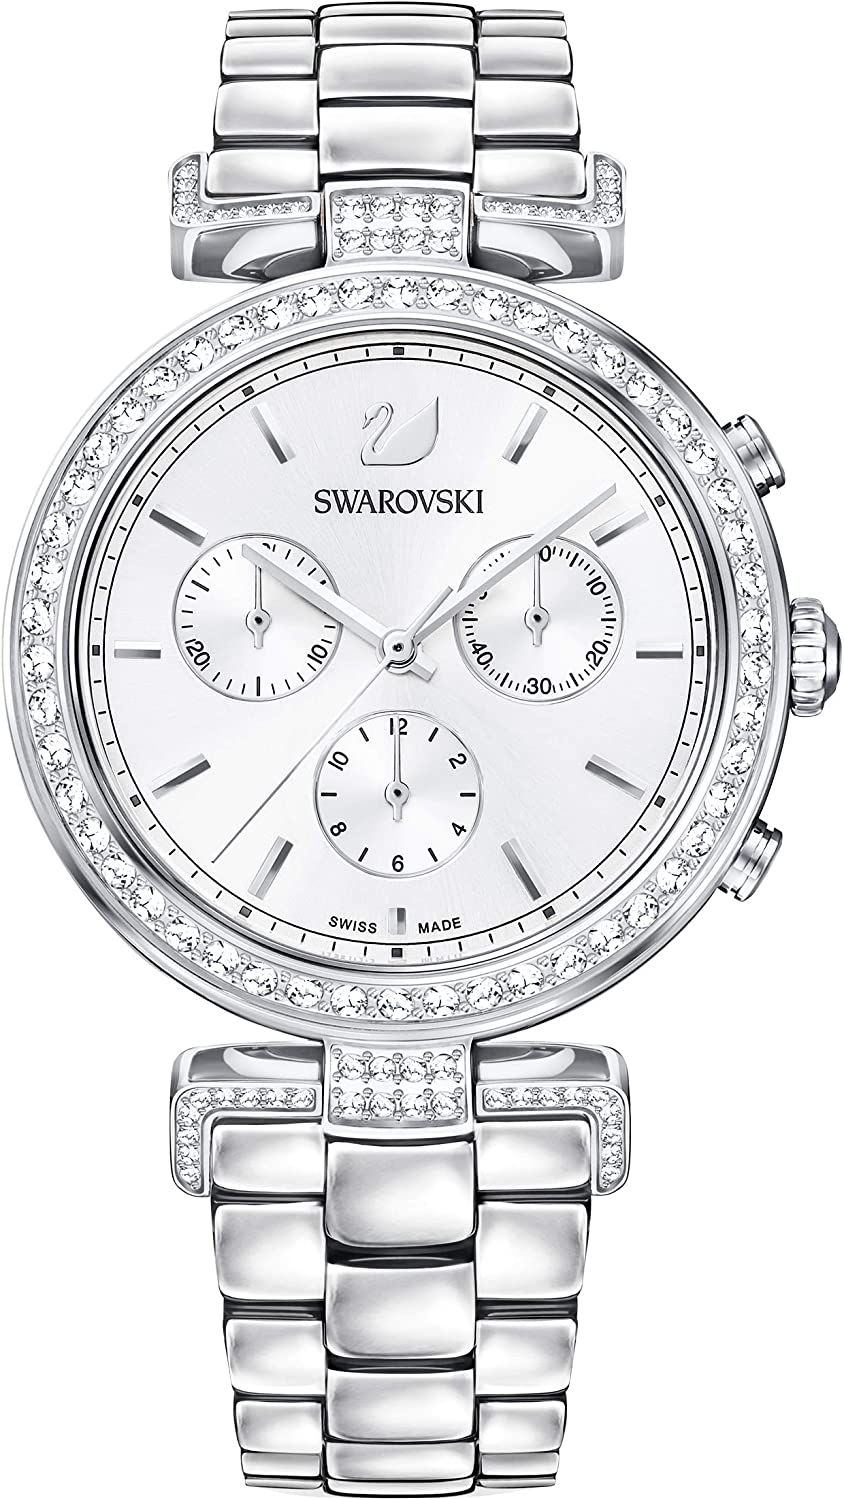 Swarovski Reloj Era Journey, Brazalete de metal, Blanco, Acero inoxidable